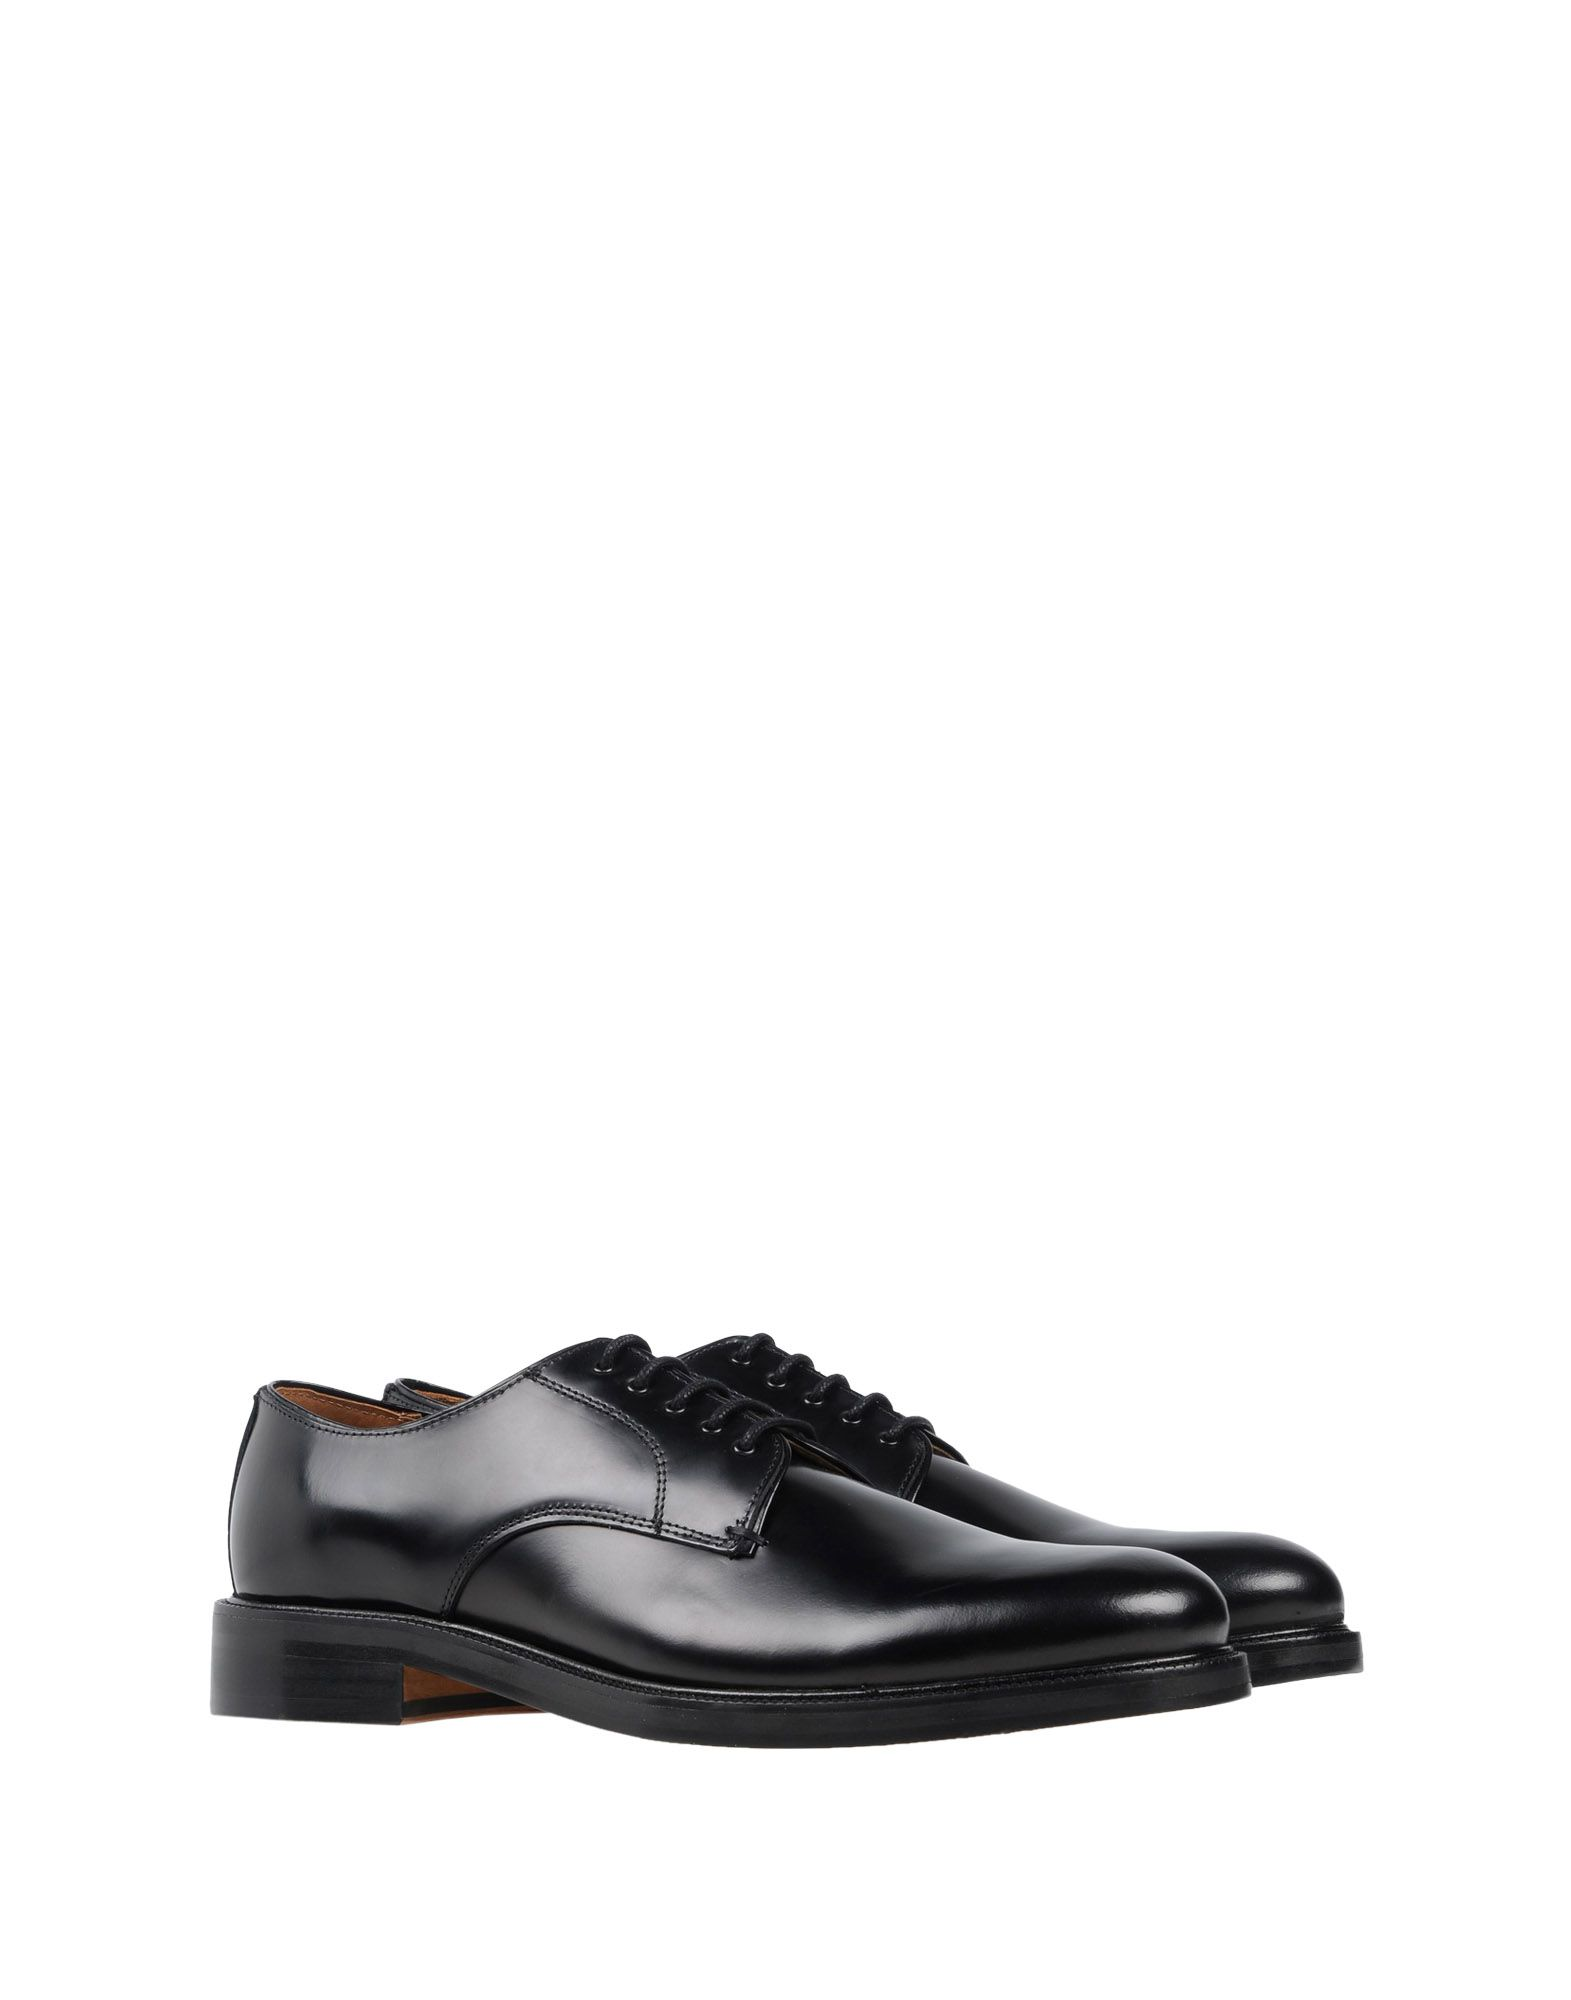 Chaussures À Lacets The Kooples Chaussures - Homme - Chaussures À Lacets The Kooples sur